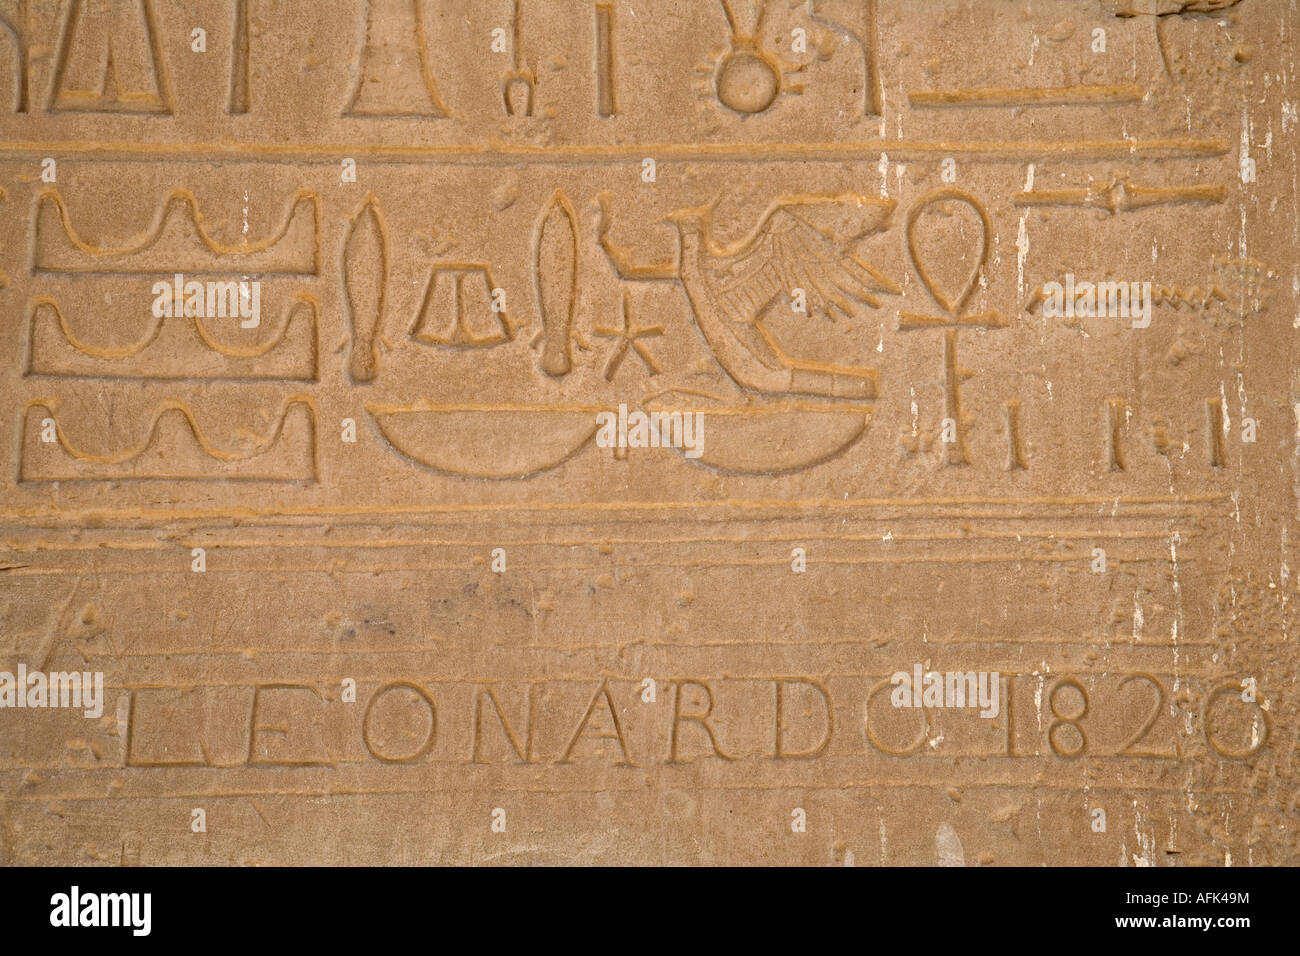 Hieroglyphs on the walls of the Ramesseum, Luxor, Egypt - Stock Image